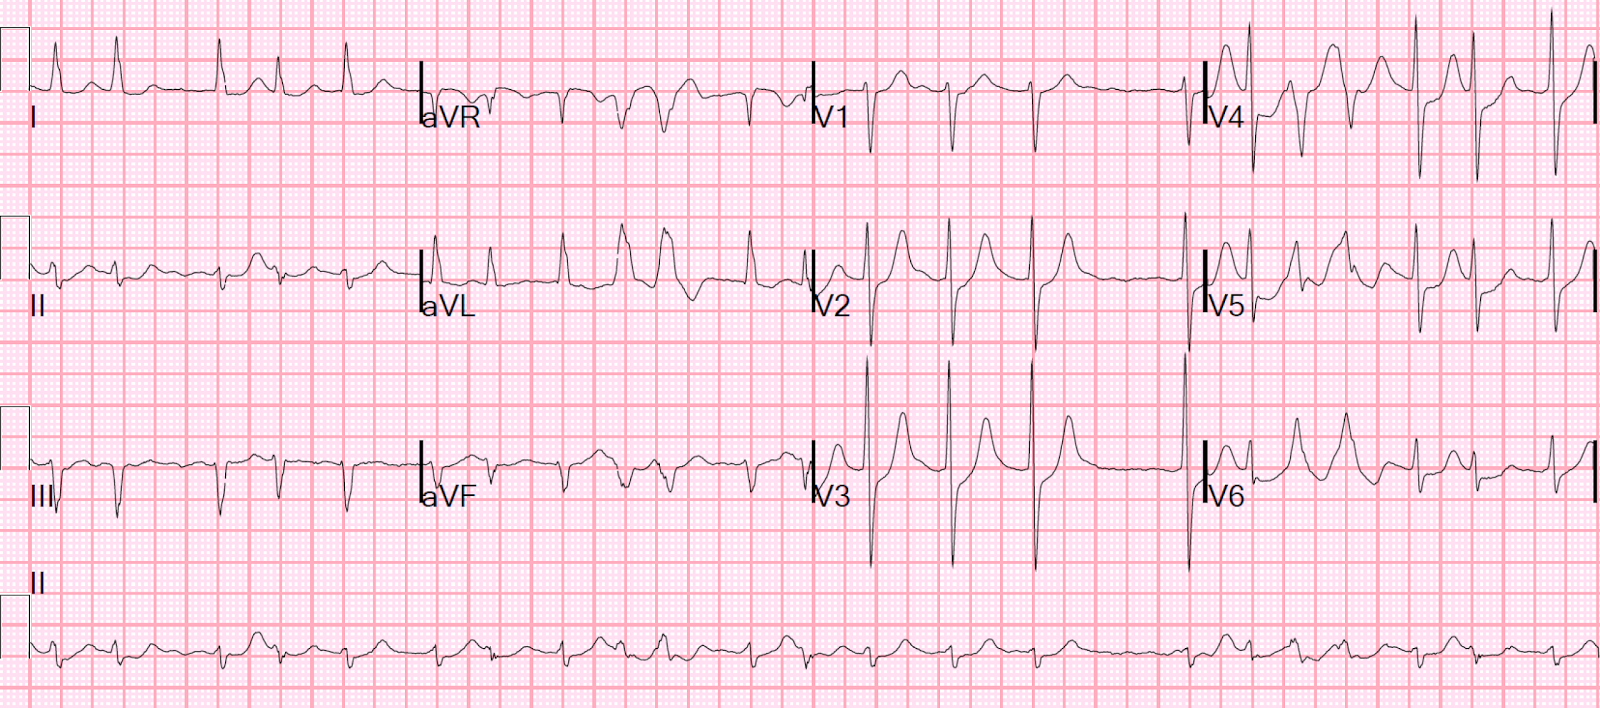 how to find atrial rate on ecg